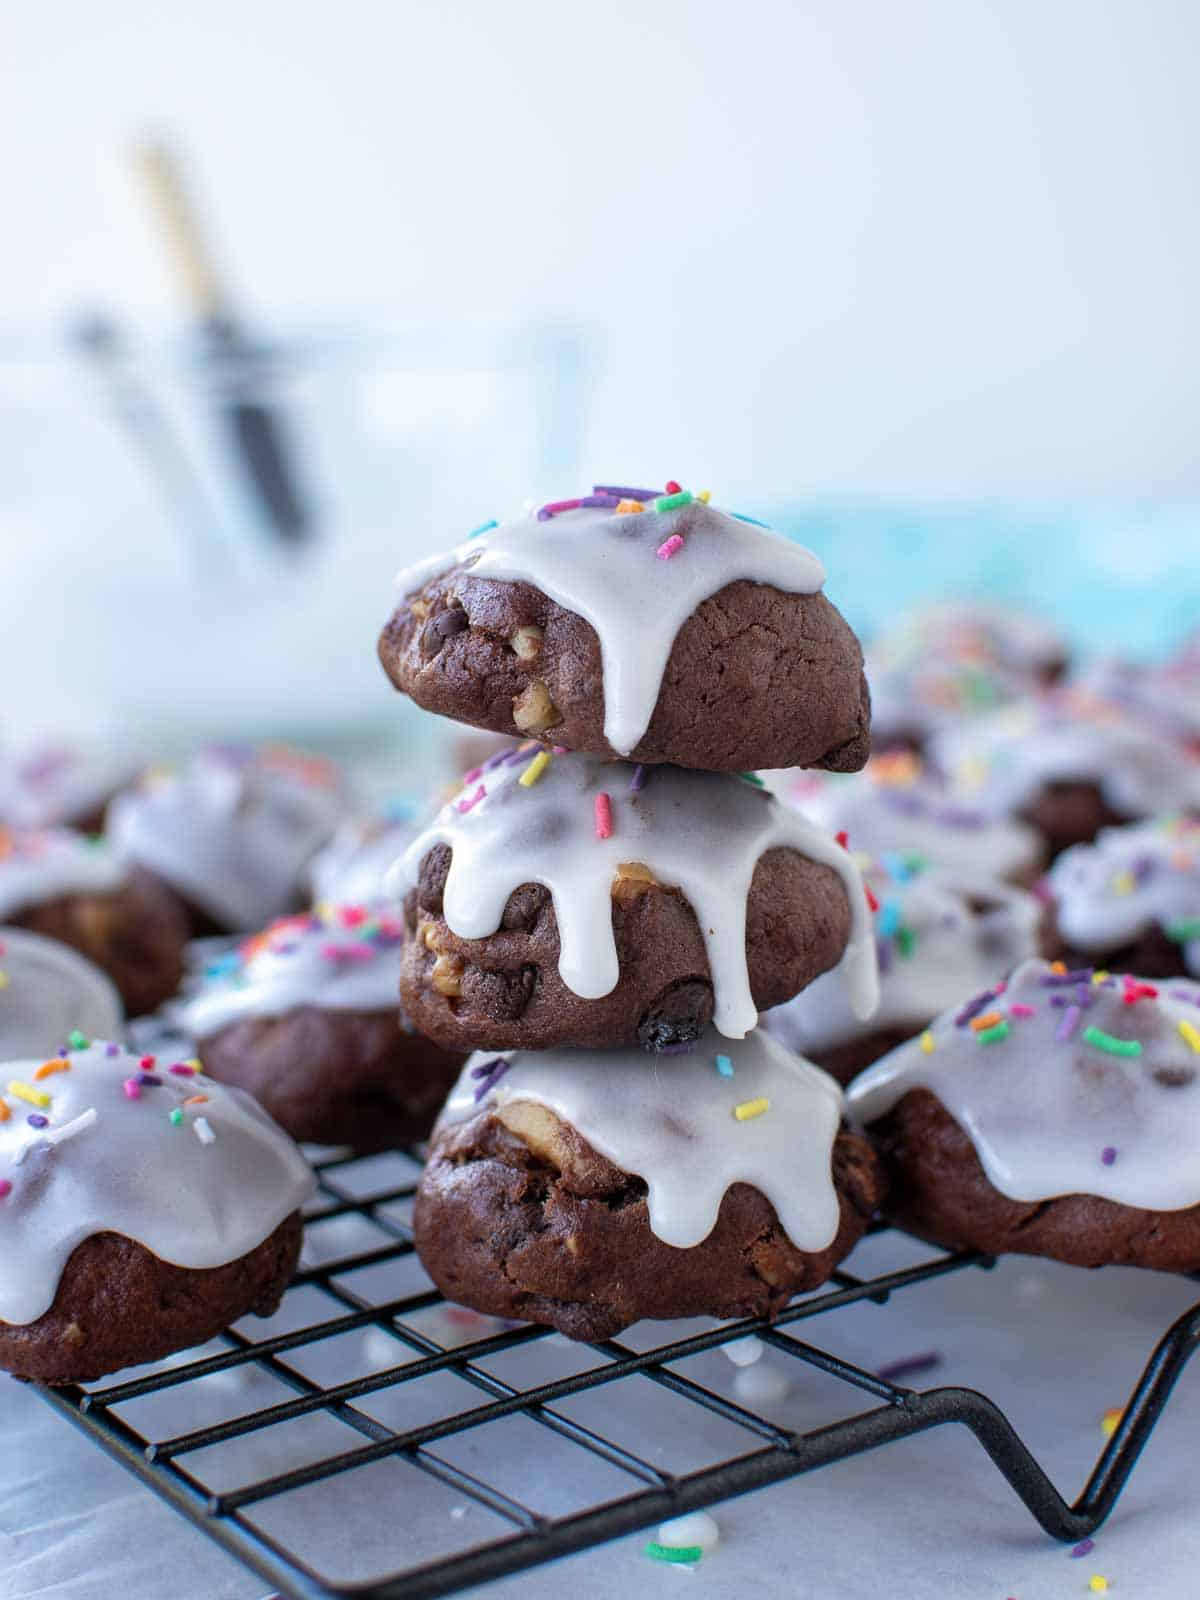 three chocolate cookies with white frosting and sprinkles stacked with extra cookies around all on a wire rack.